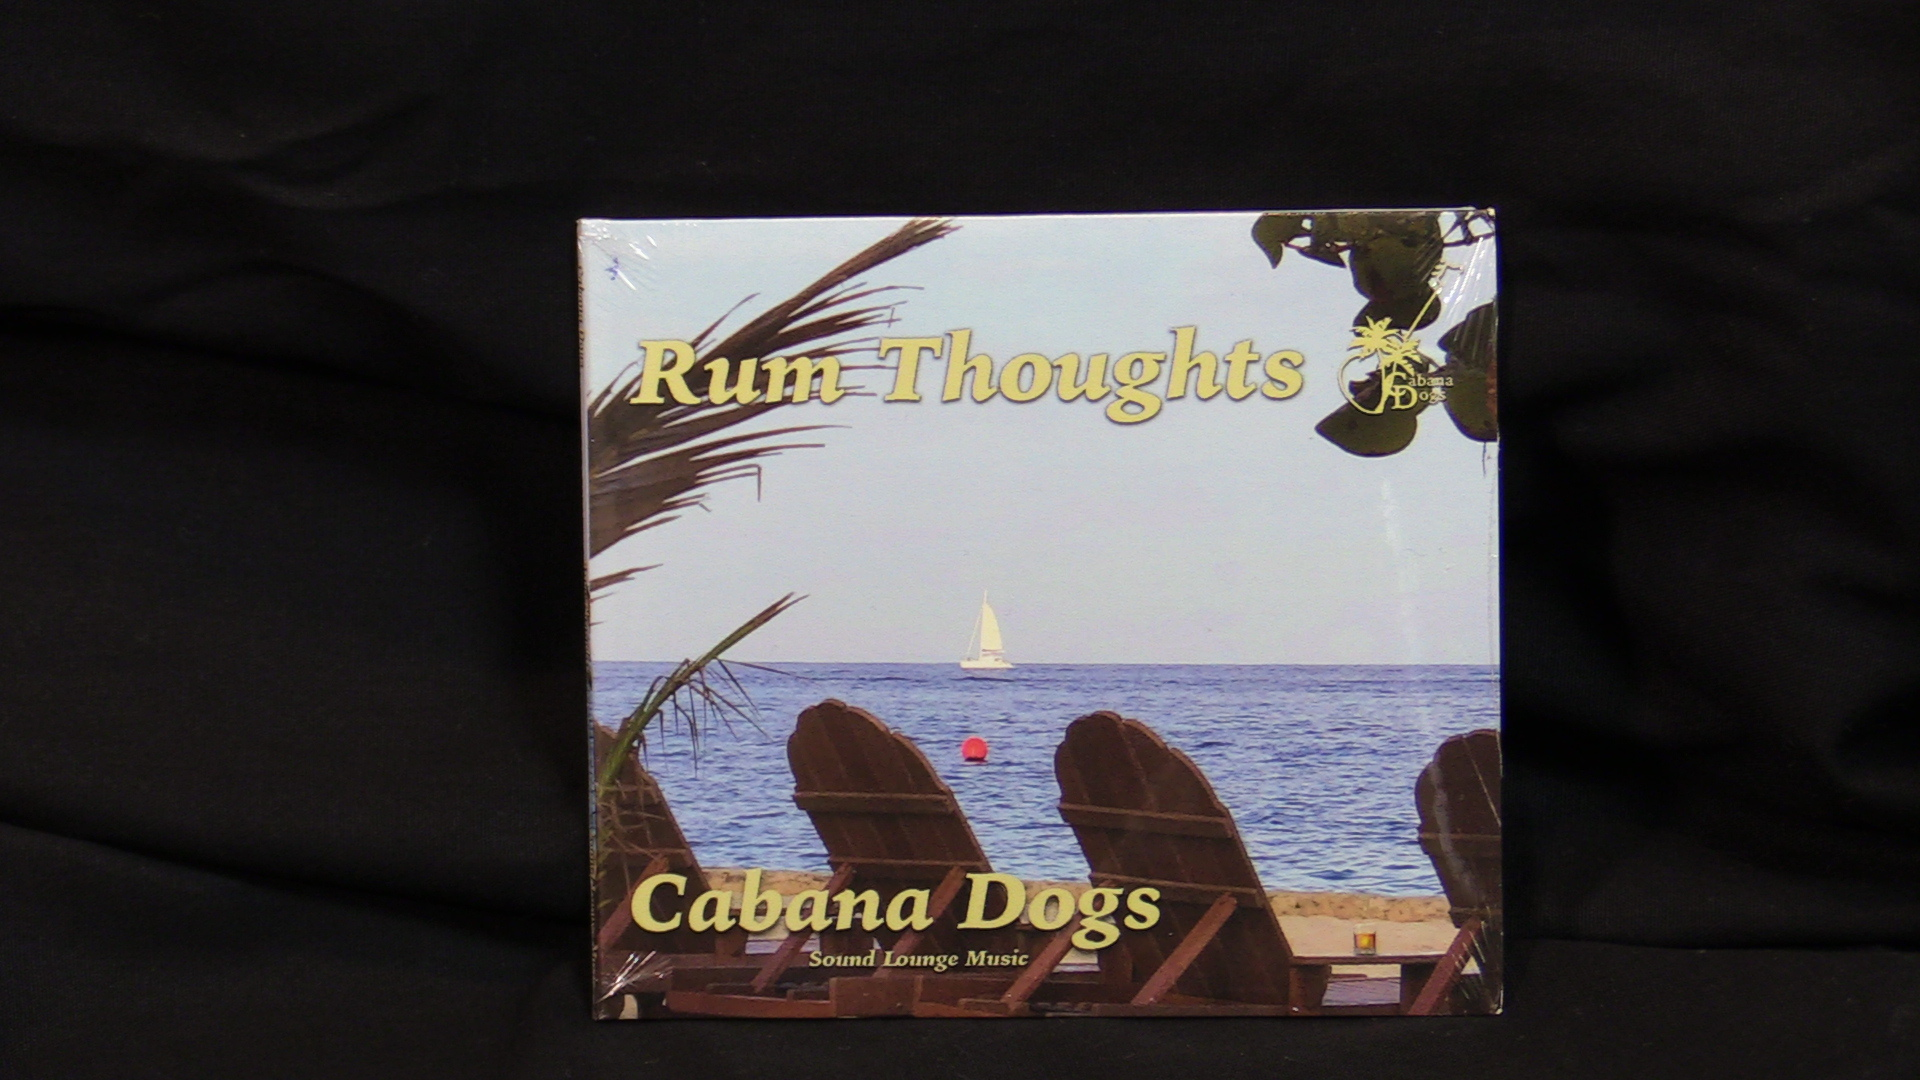 Cabana Dogs Rum Thoughts CD 00002